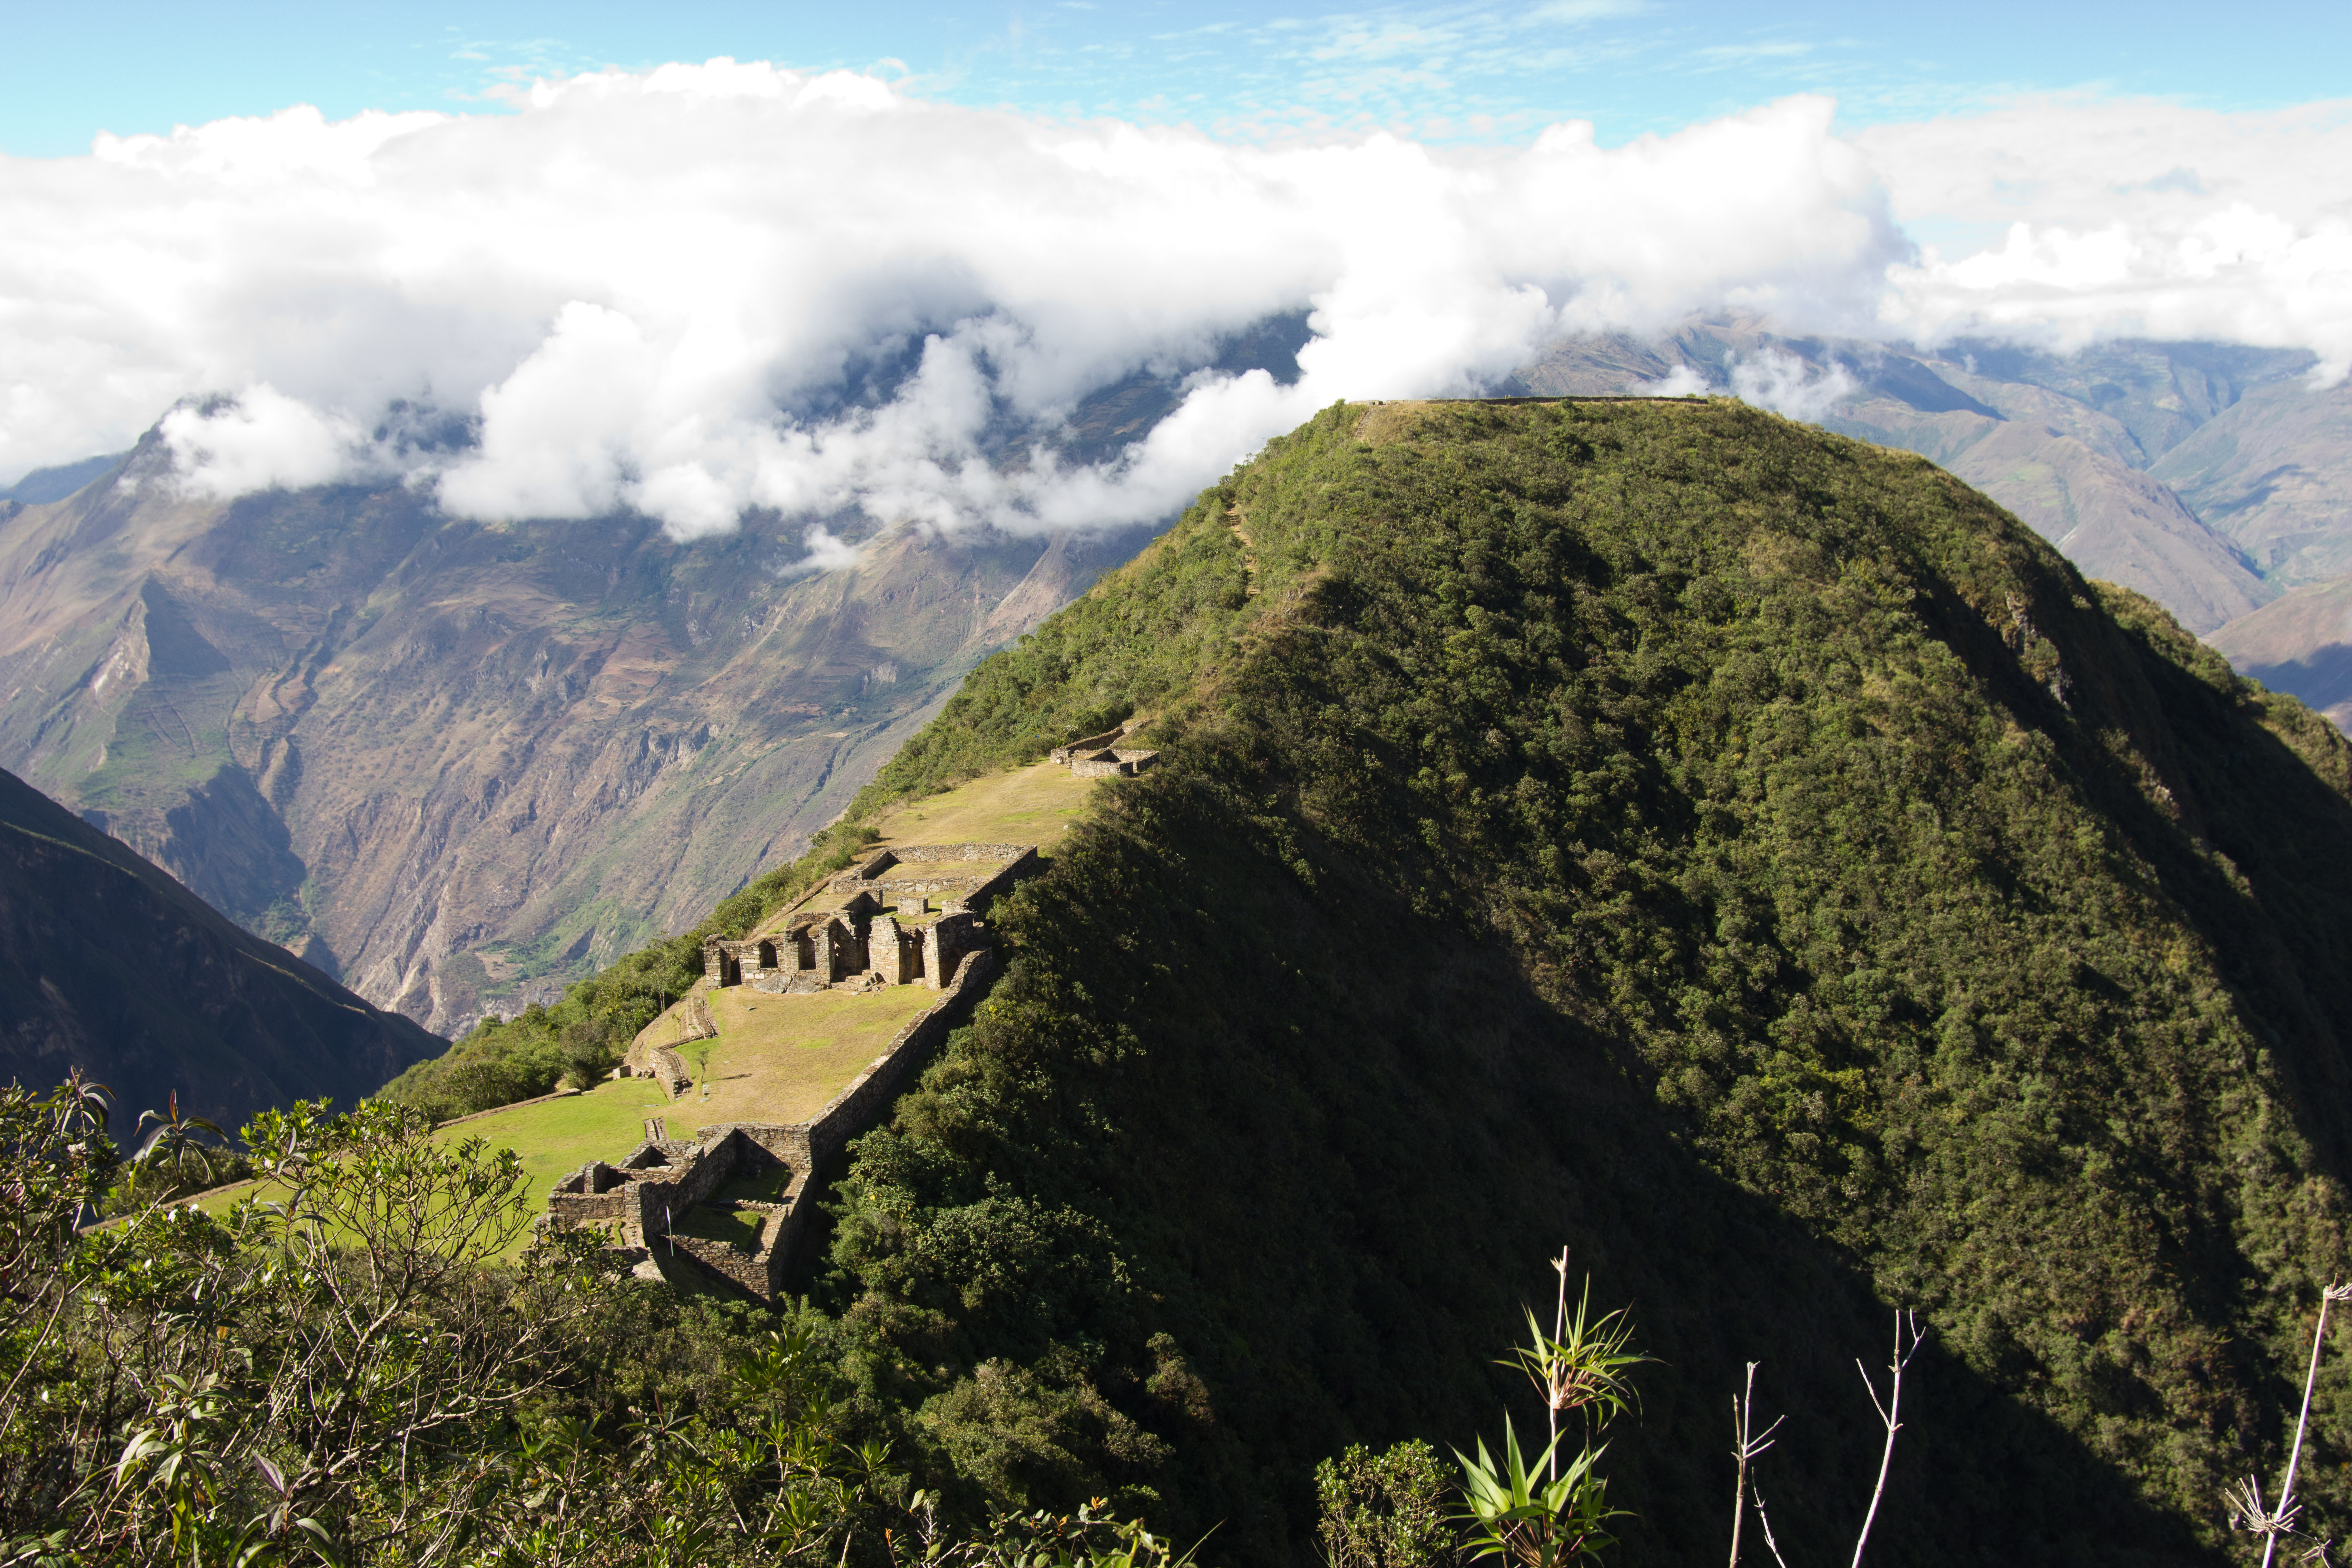 Incan city of Choquequirao, Peru